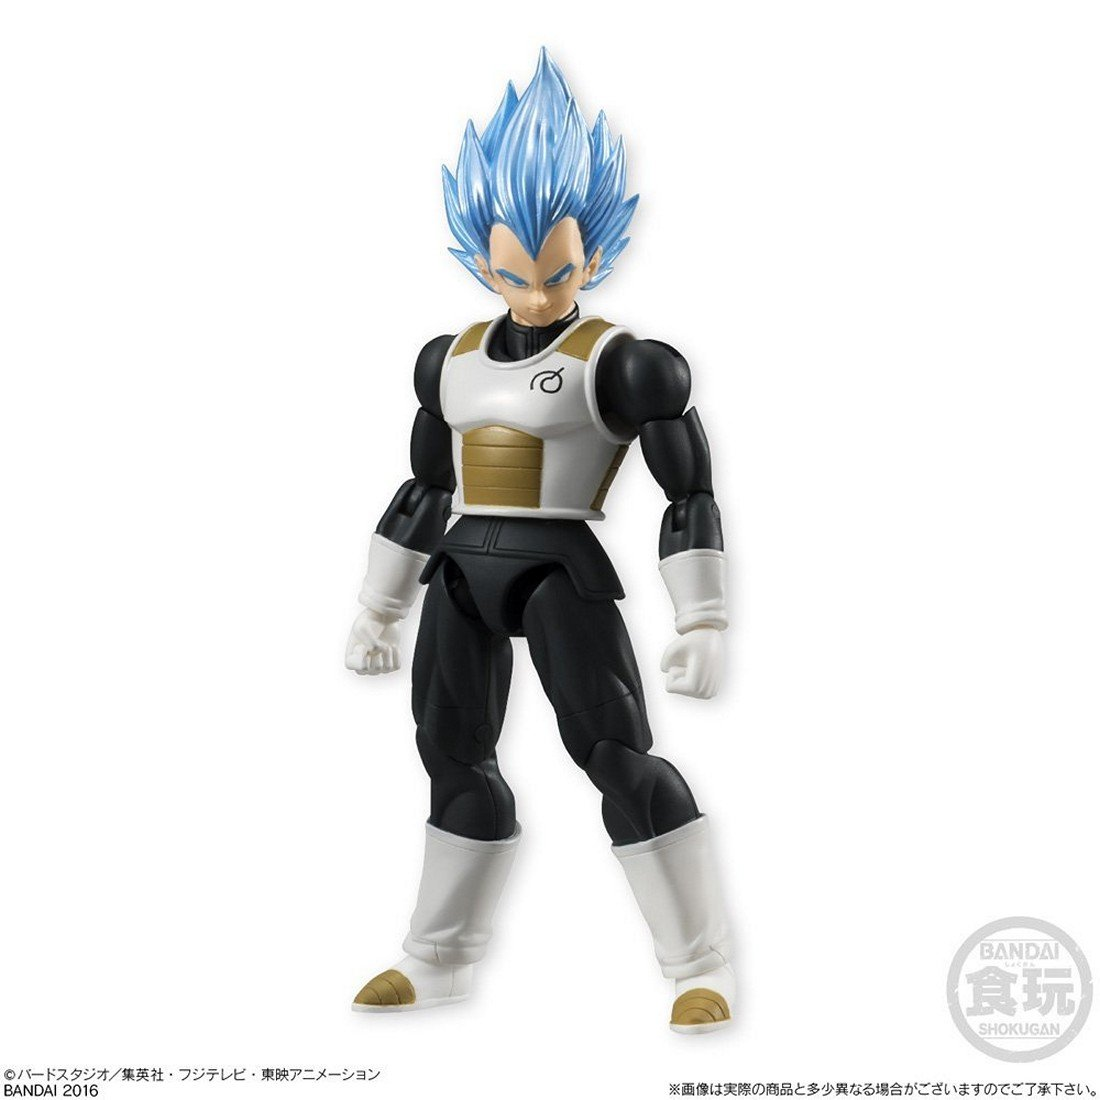 Dragon Ball Z Toys : Best dragon ball z and super action figures of